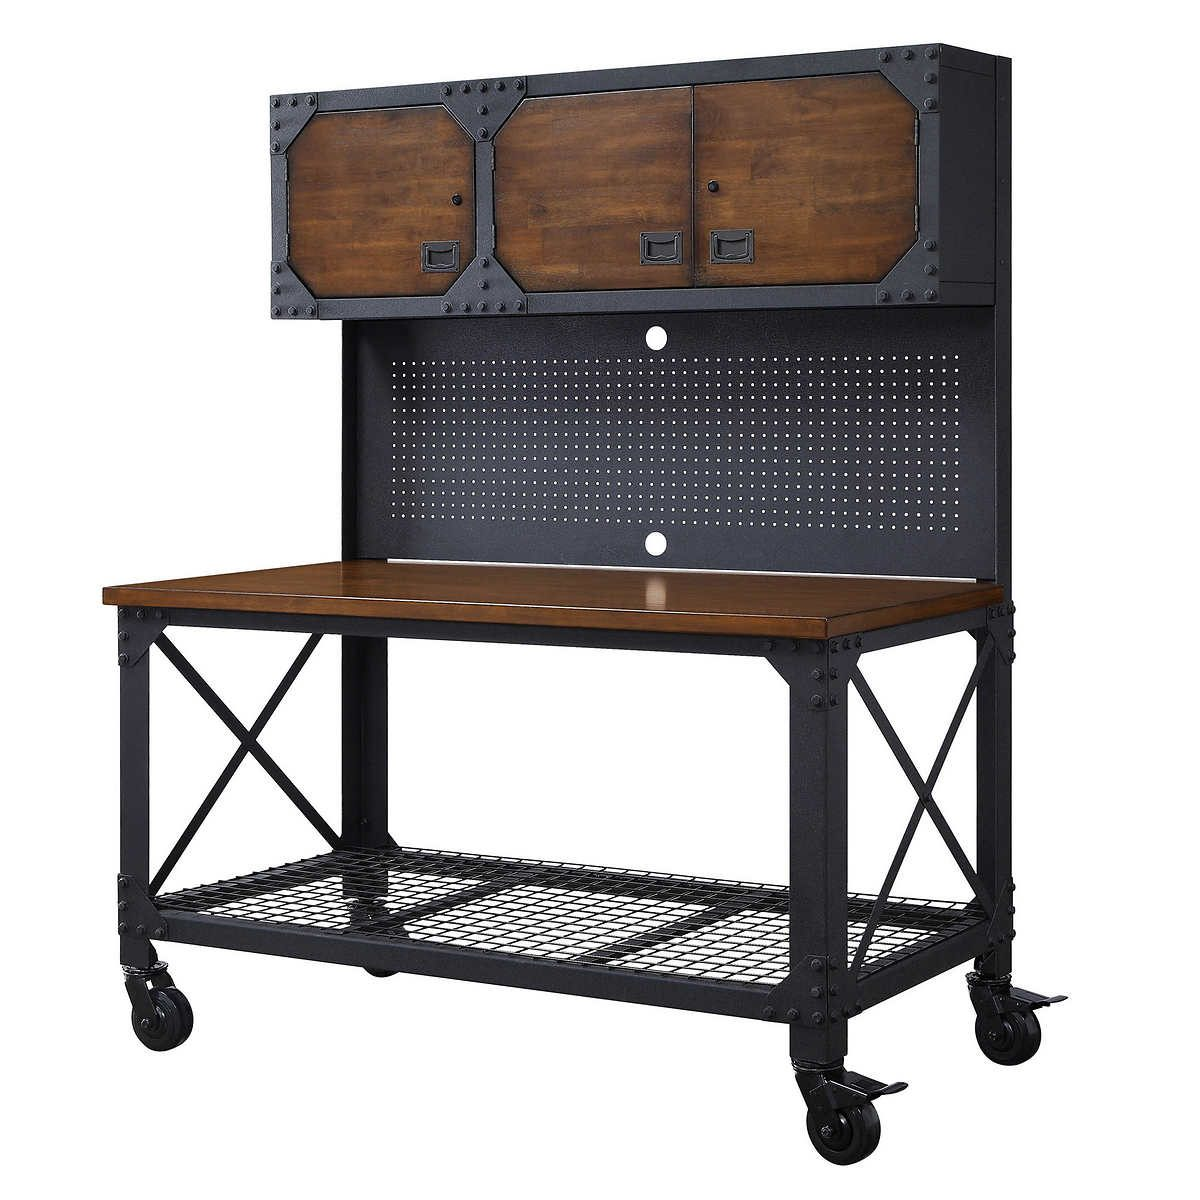 Flip And Fold Rolling Table Stainless Steel Wood: 10 Workshop Storage Products You Can Get At Costco